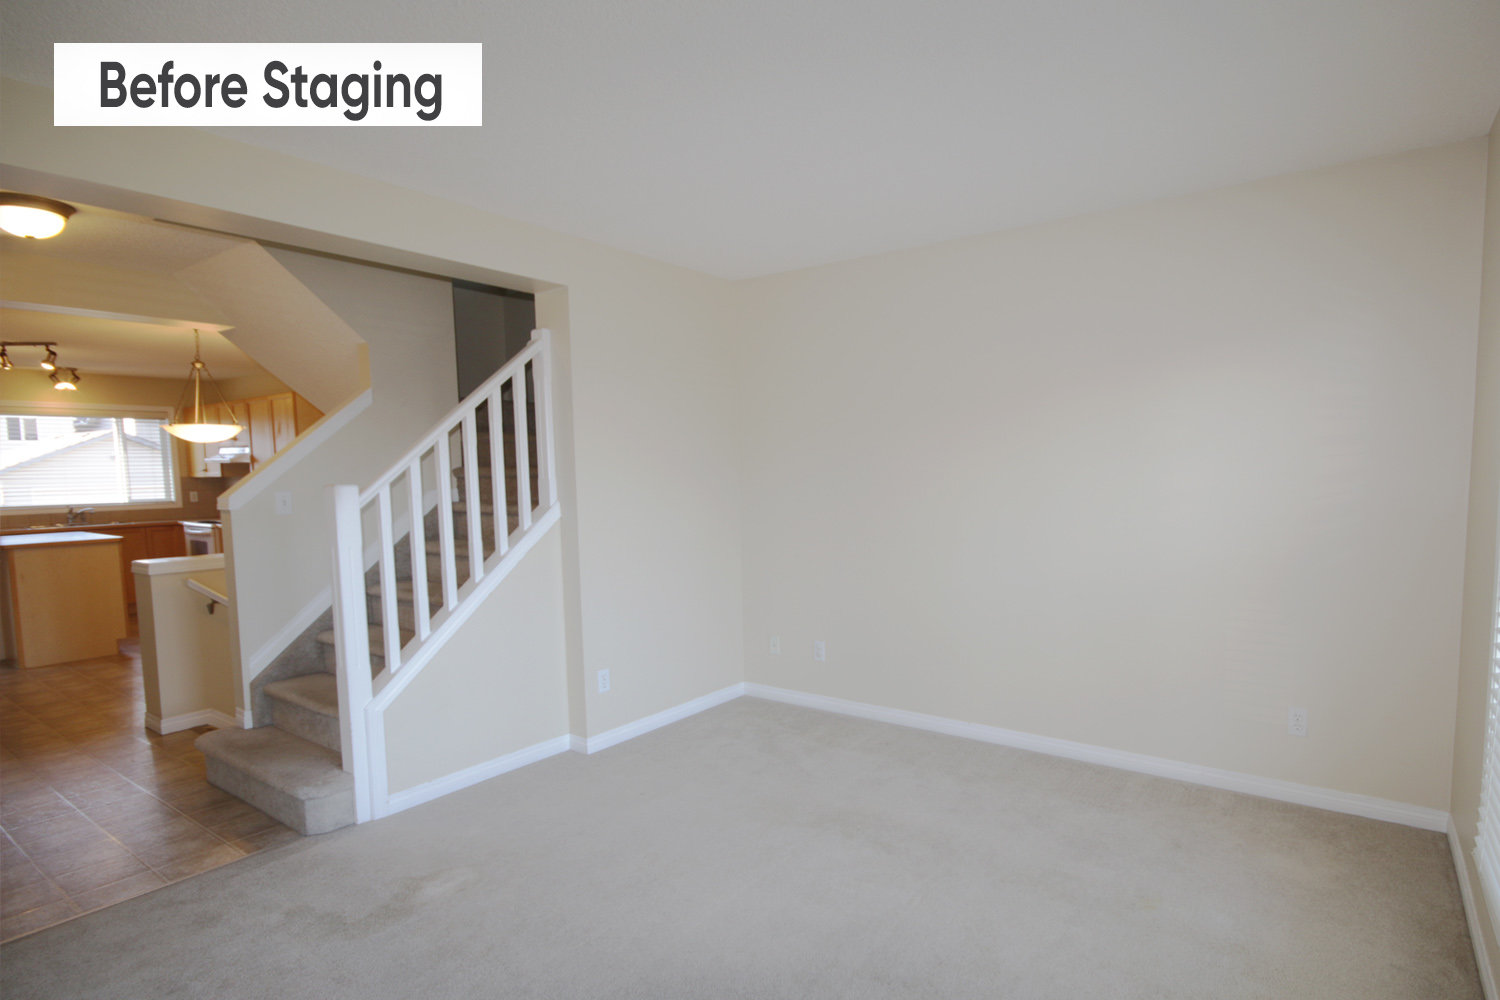 Before staging a home.